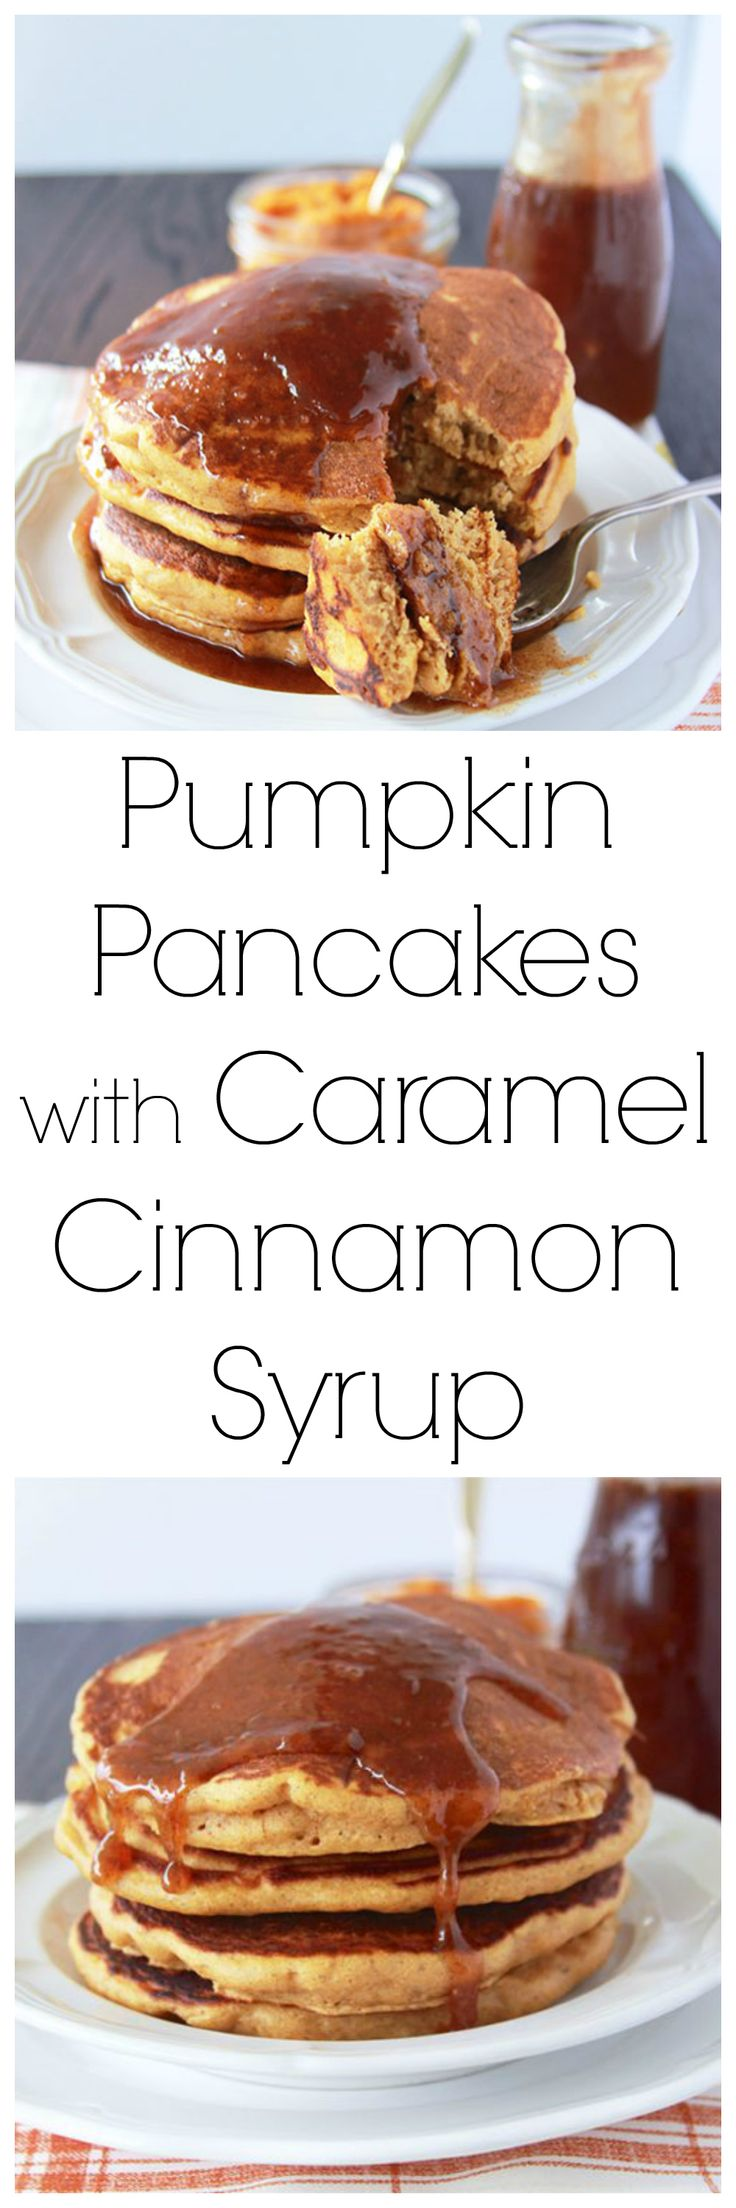 Pumpkin Pancakes with Caramel Cinnamon Syrup is an autumn delight! Your family will completely fall in LOVE with them! www.cookingwithruthie.com